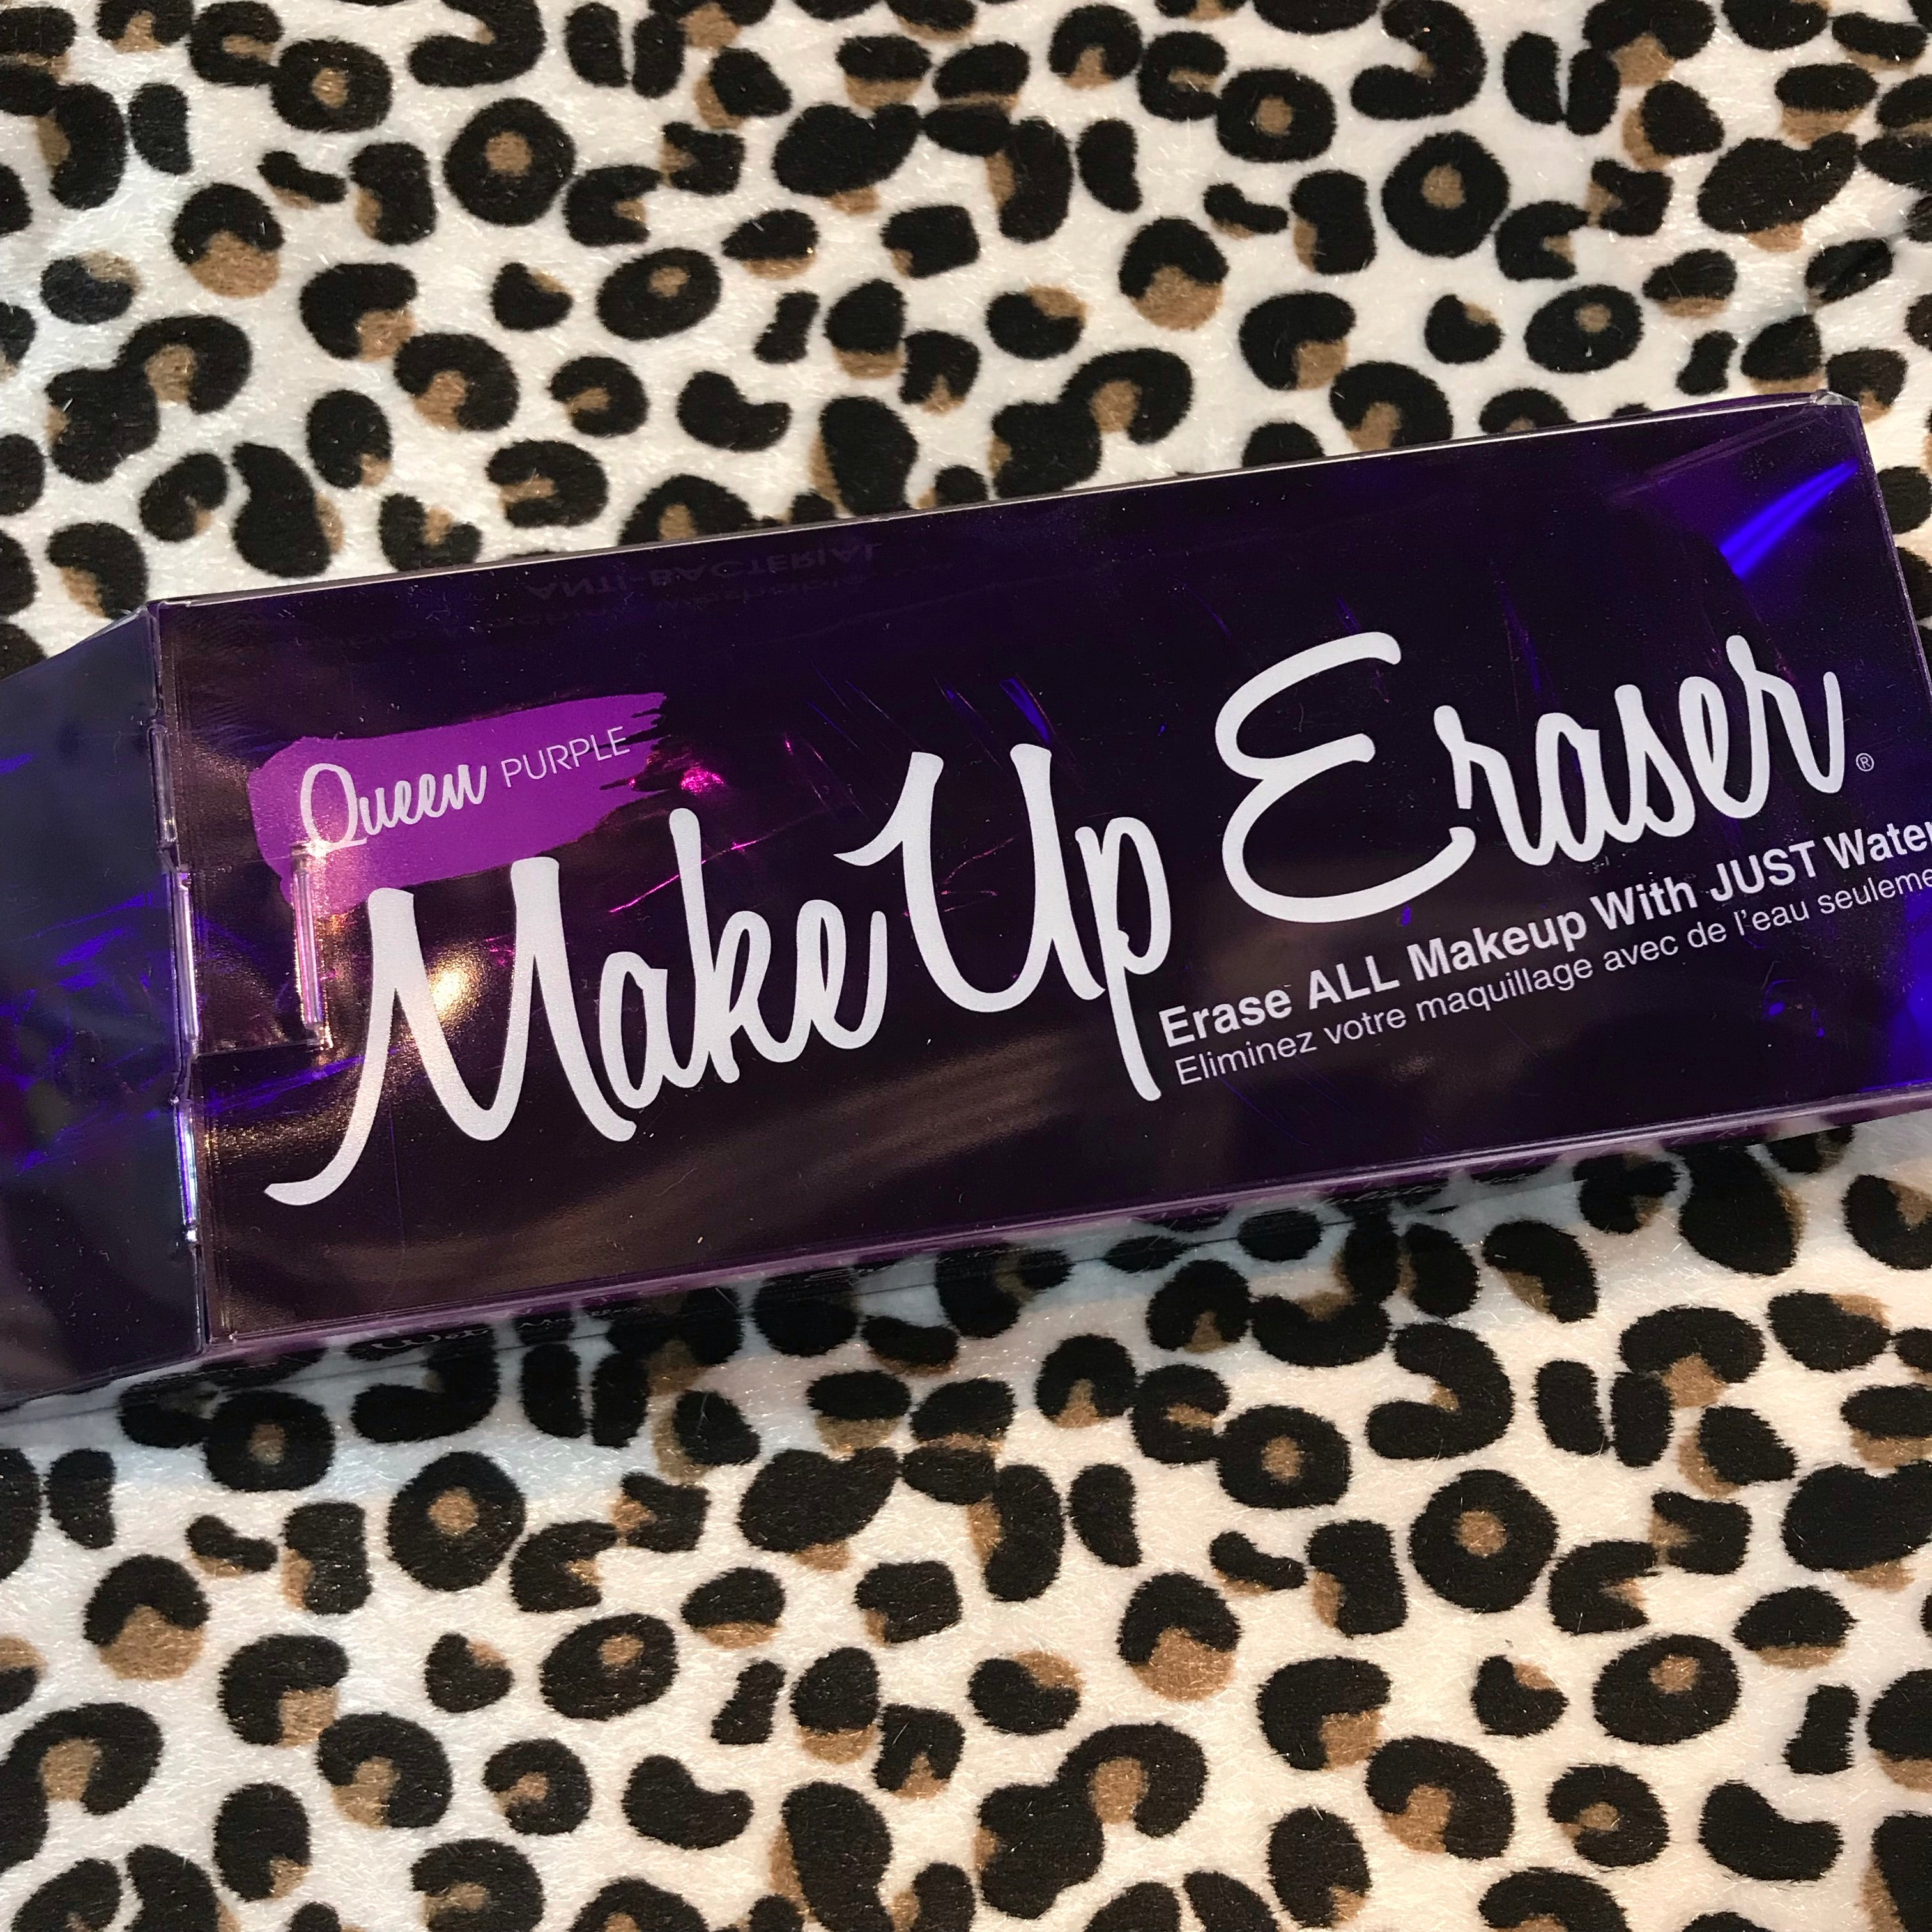 MakeUp Eraser - All Blinged Out/Calamity's